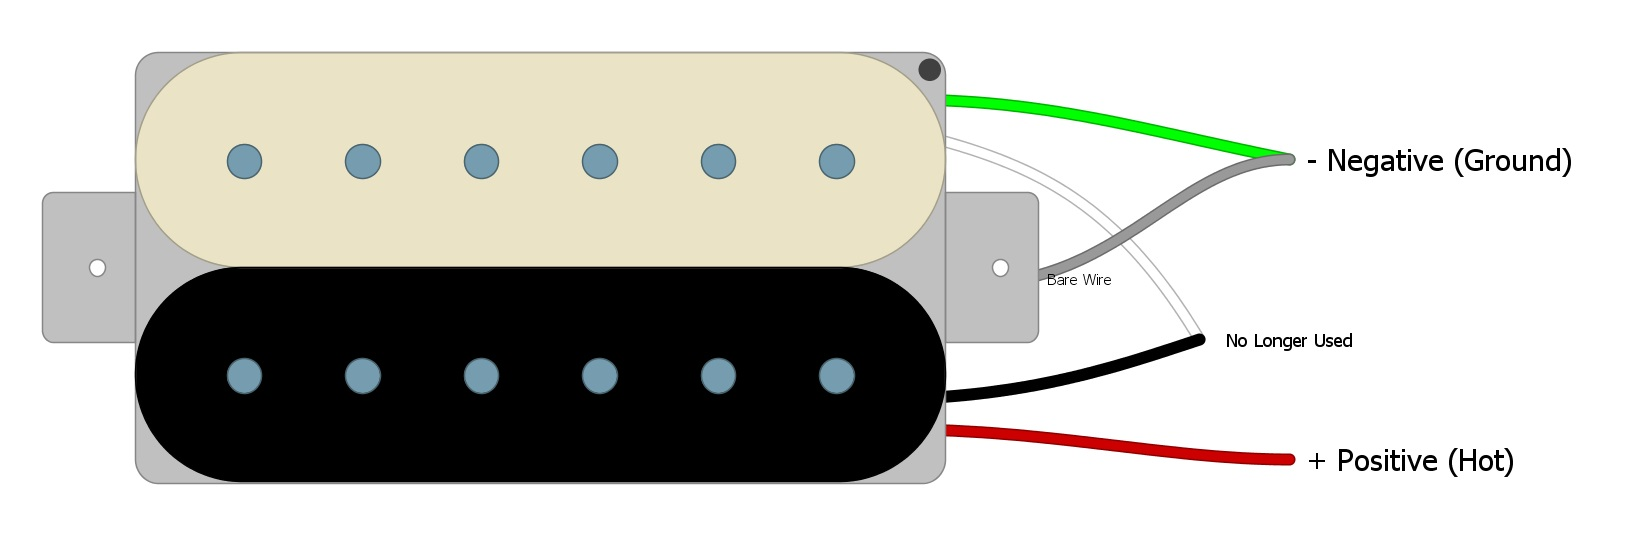 Dimarzio Titan Wiring Diagram – Humbucker Soup | Guitar Wiring Diagrams Dimarzio |  | Humbucker Soup